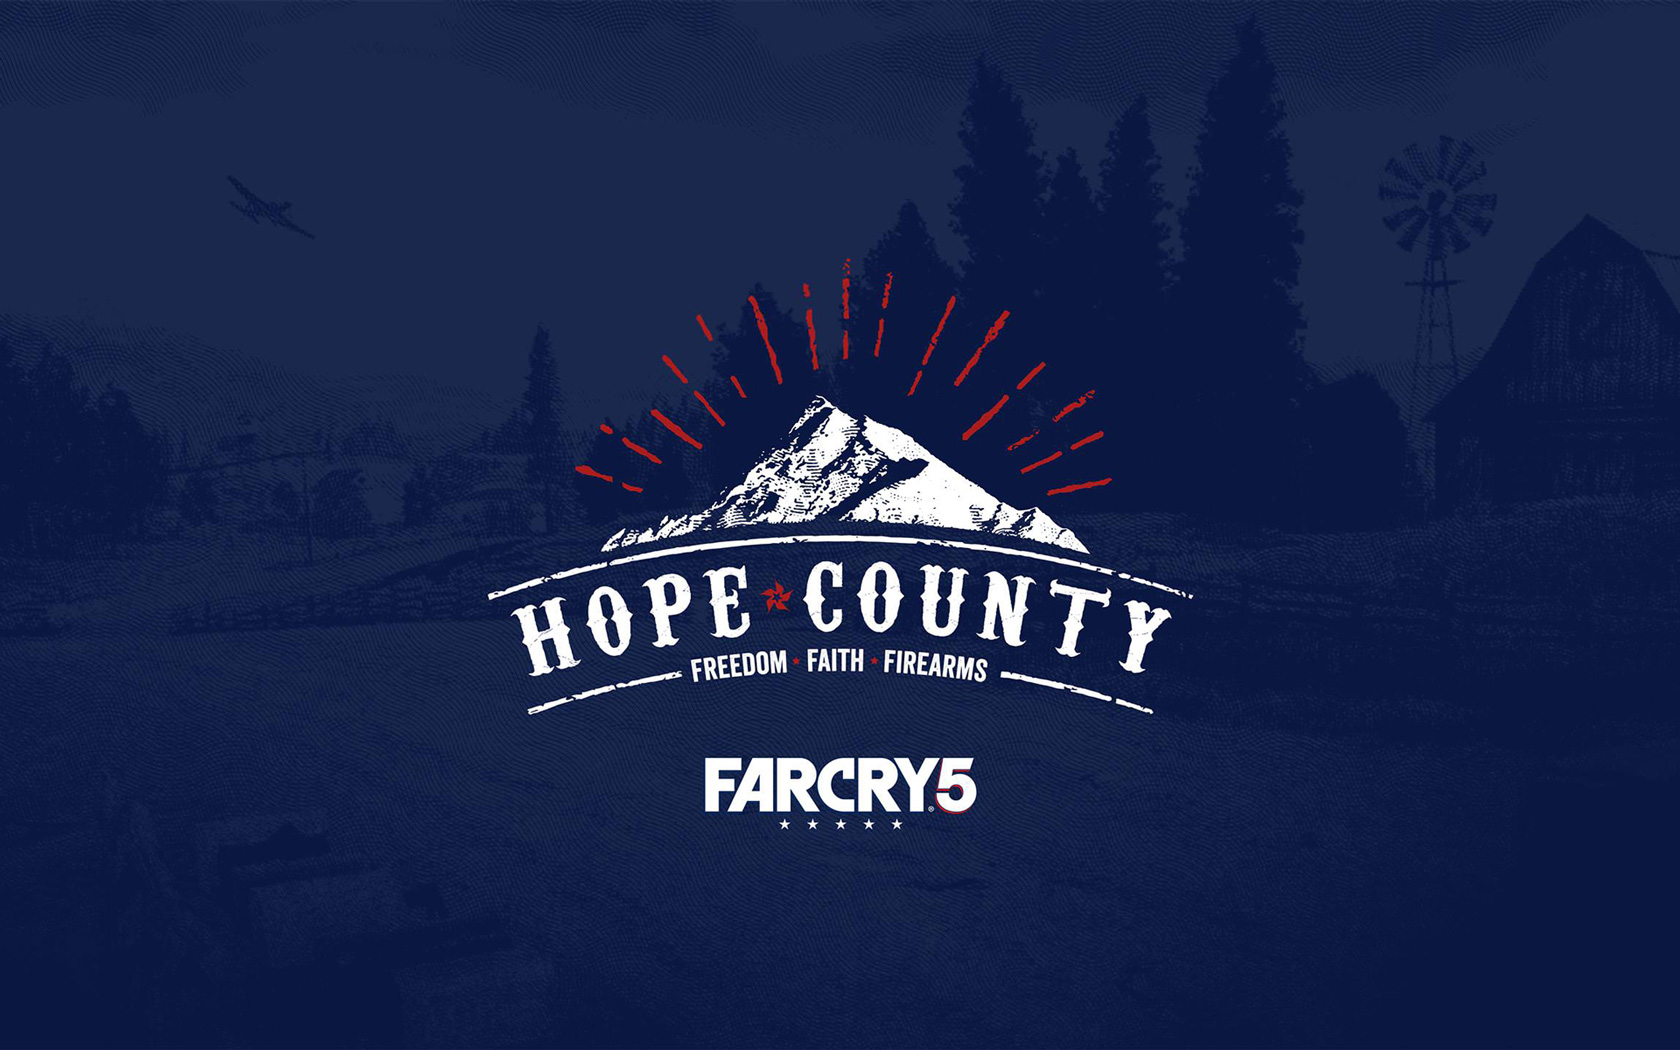 Free Far Cry 5 Wallpaper in 1680x1050